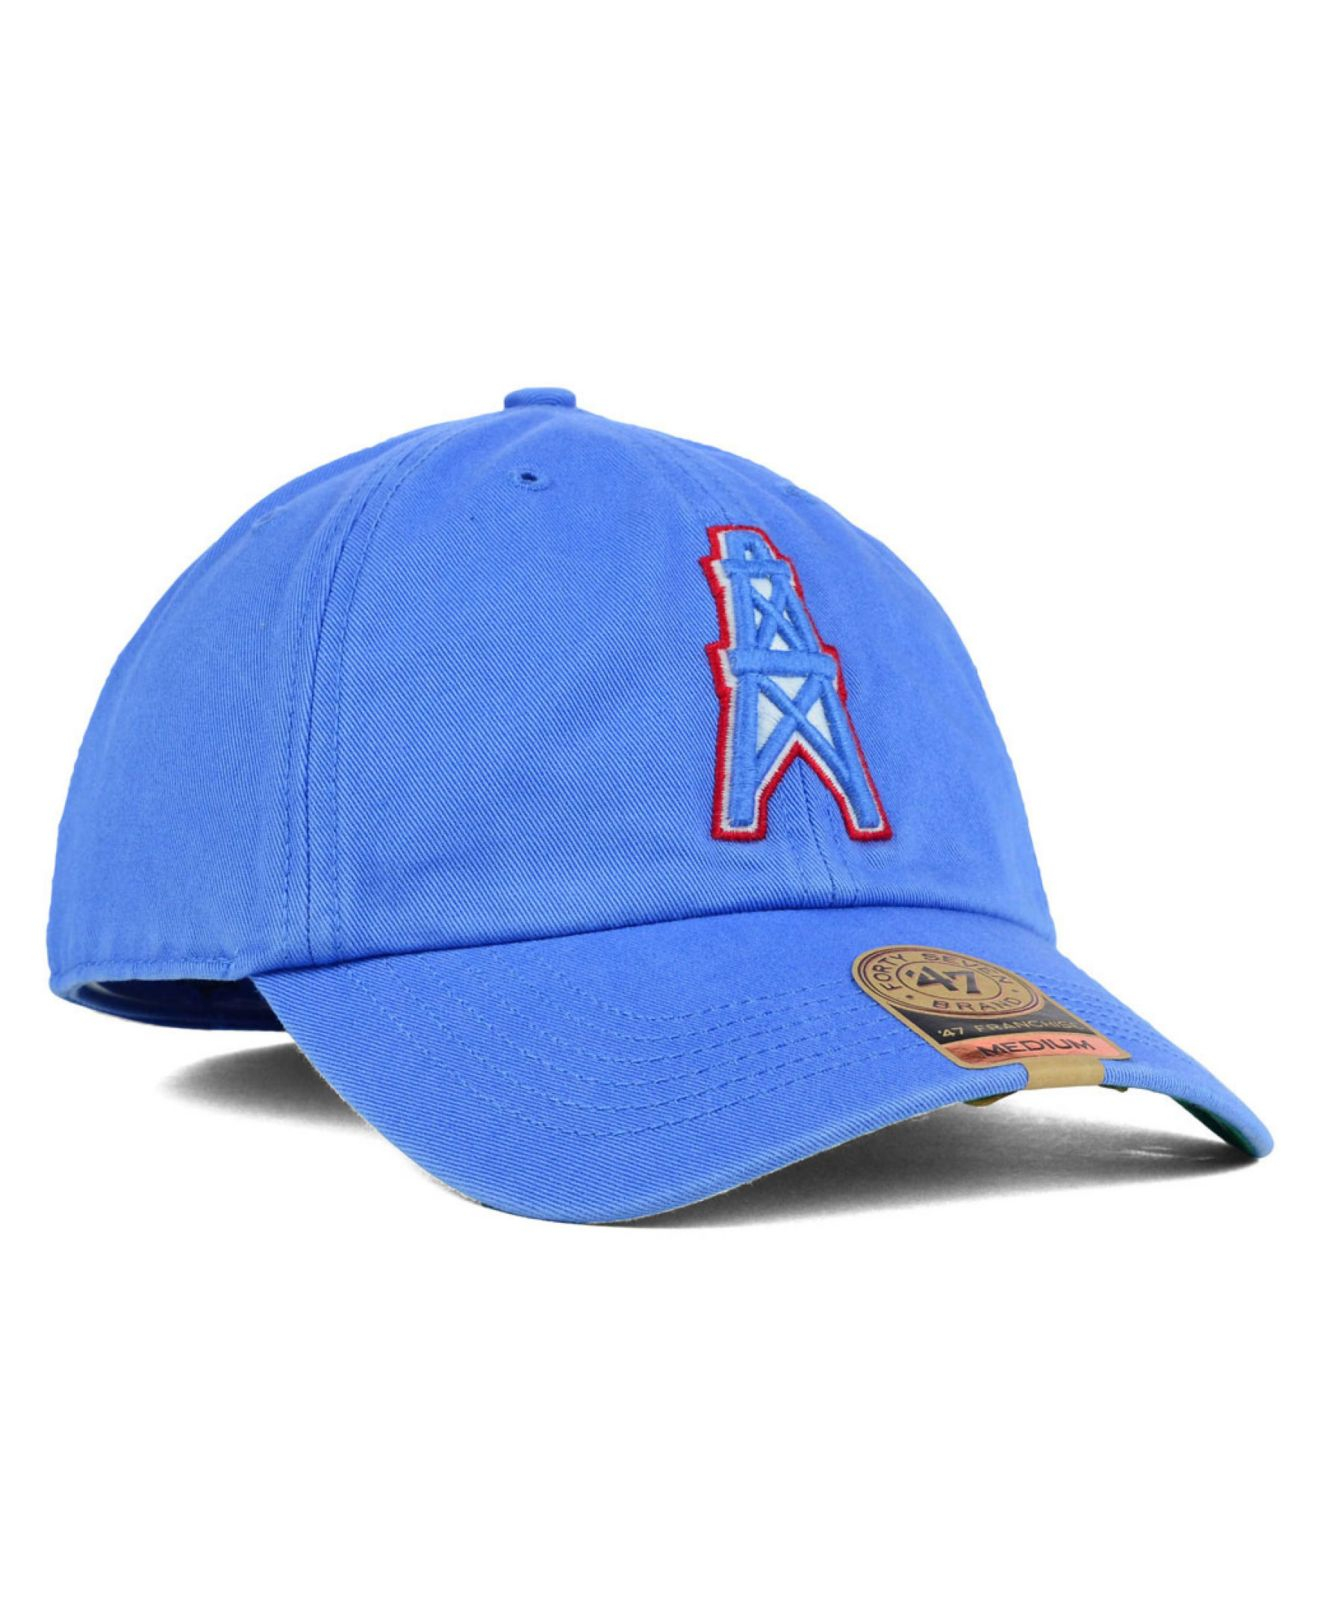 ... ireland lyst 47 brand houston oilers franchise cap in blue for men  b59bf 41176 a27861eeb